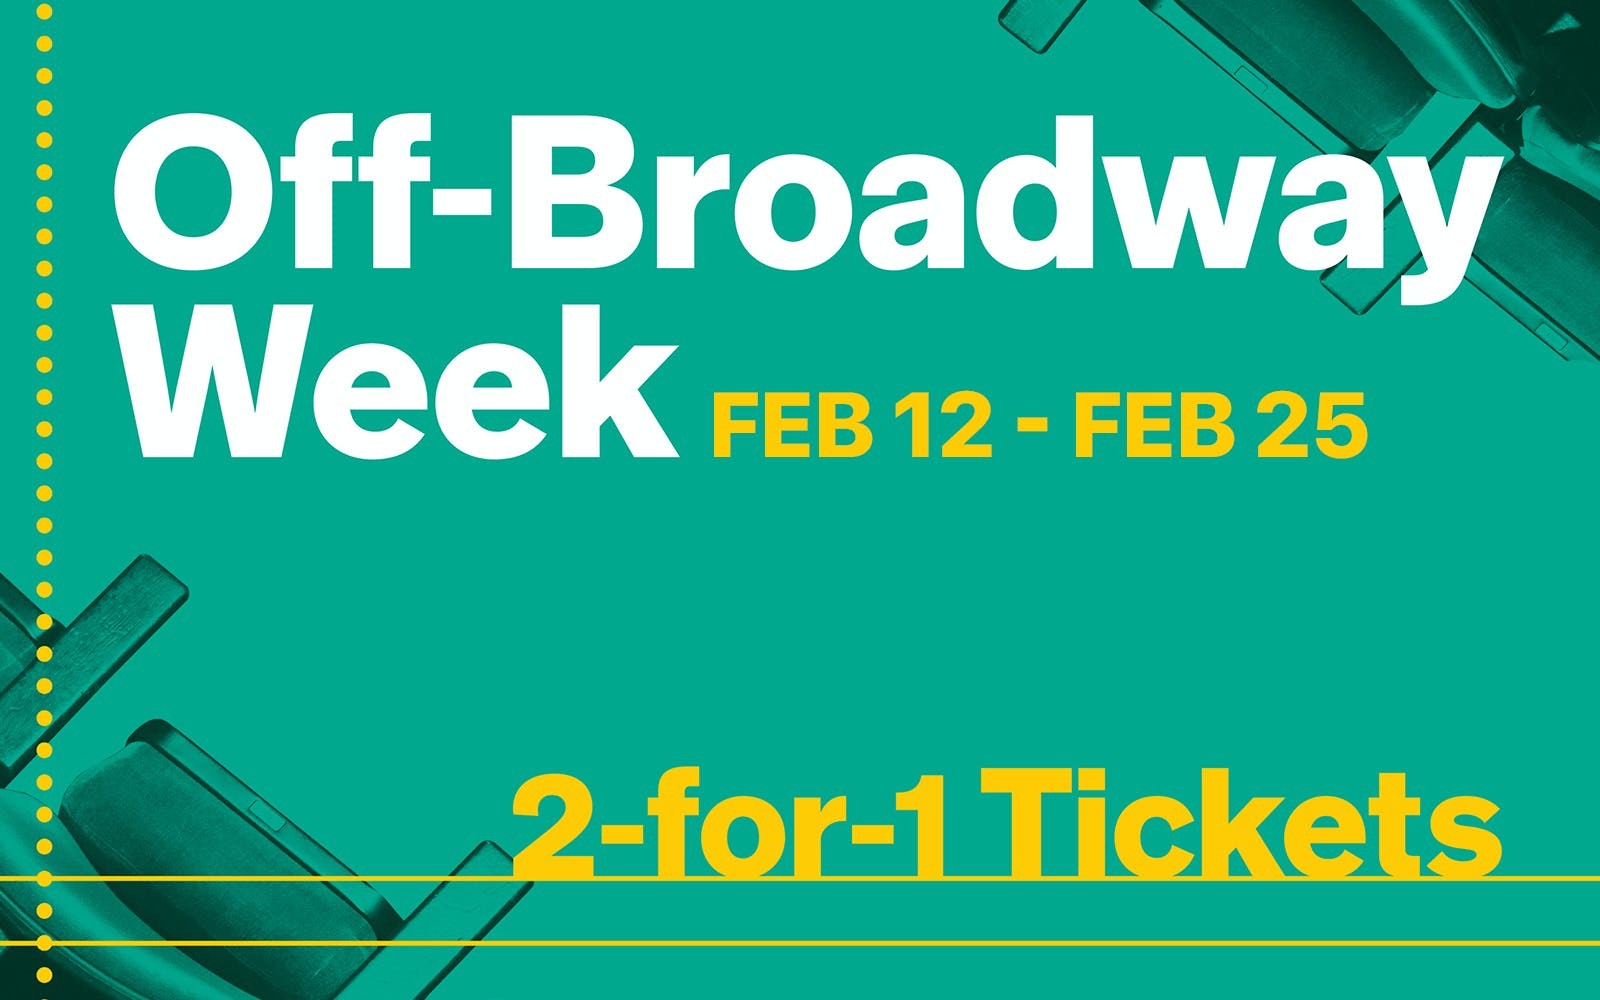 Off Broadway Week 2 for 1